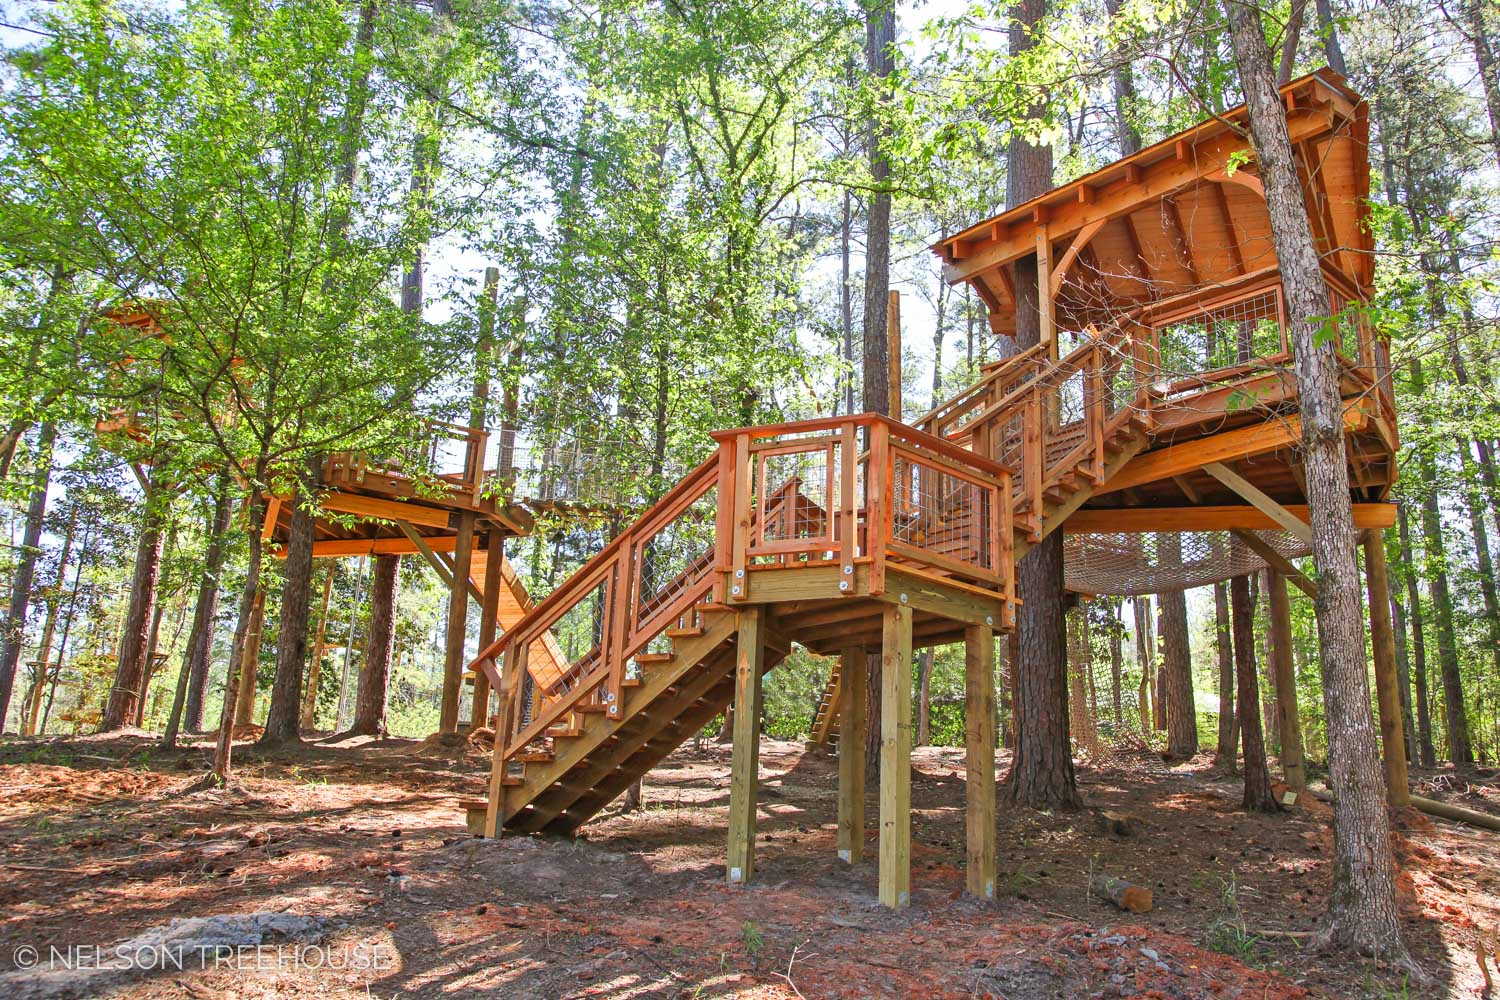 All the places you can go to visit a Nelson treehouse! — Nelson